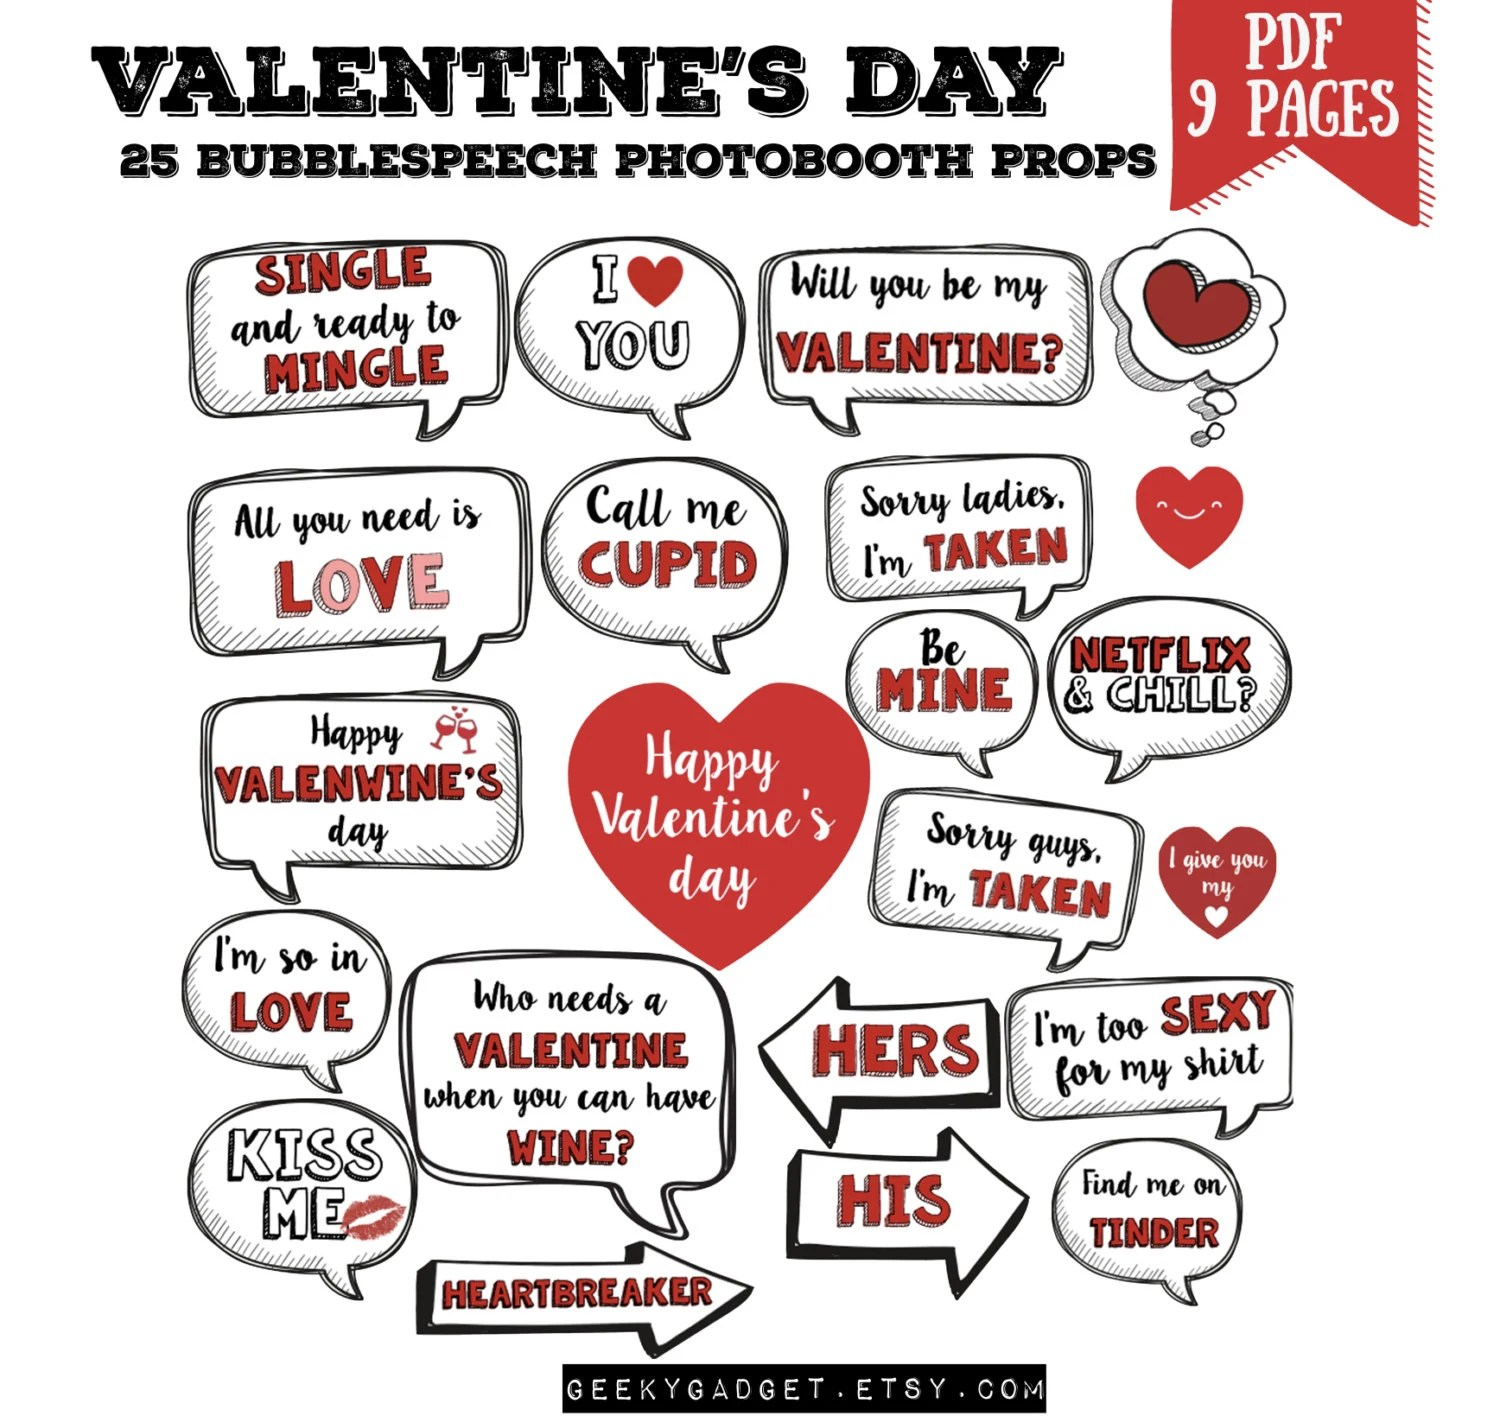 Valentine S Day Party Bubble Speech Photo Booth Props Set